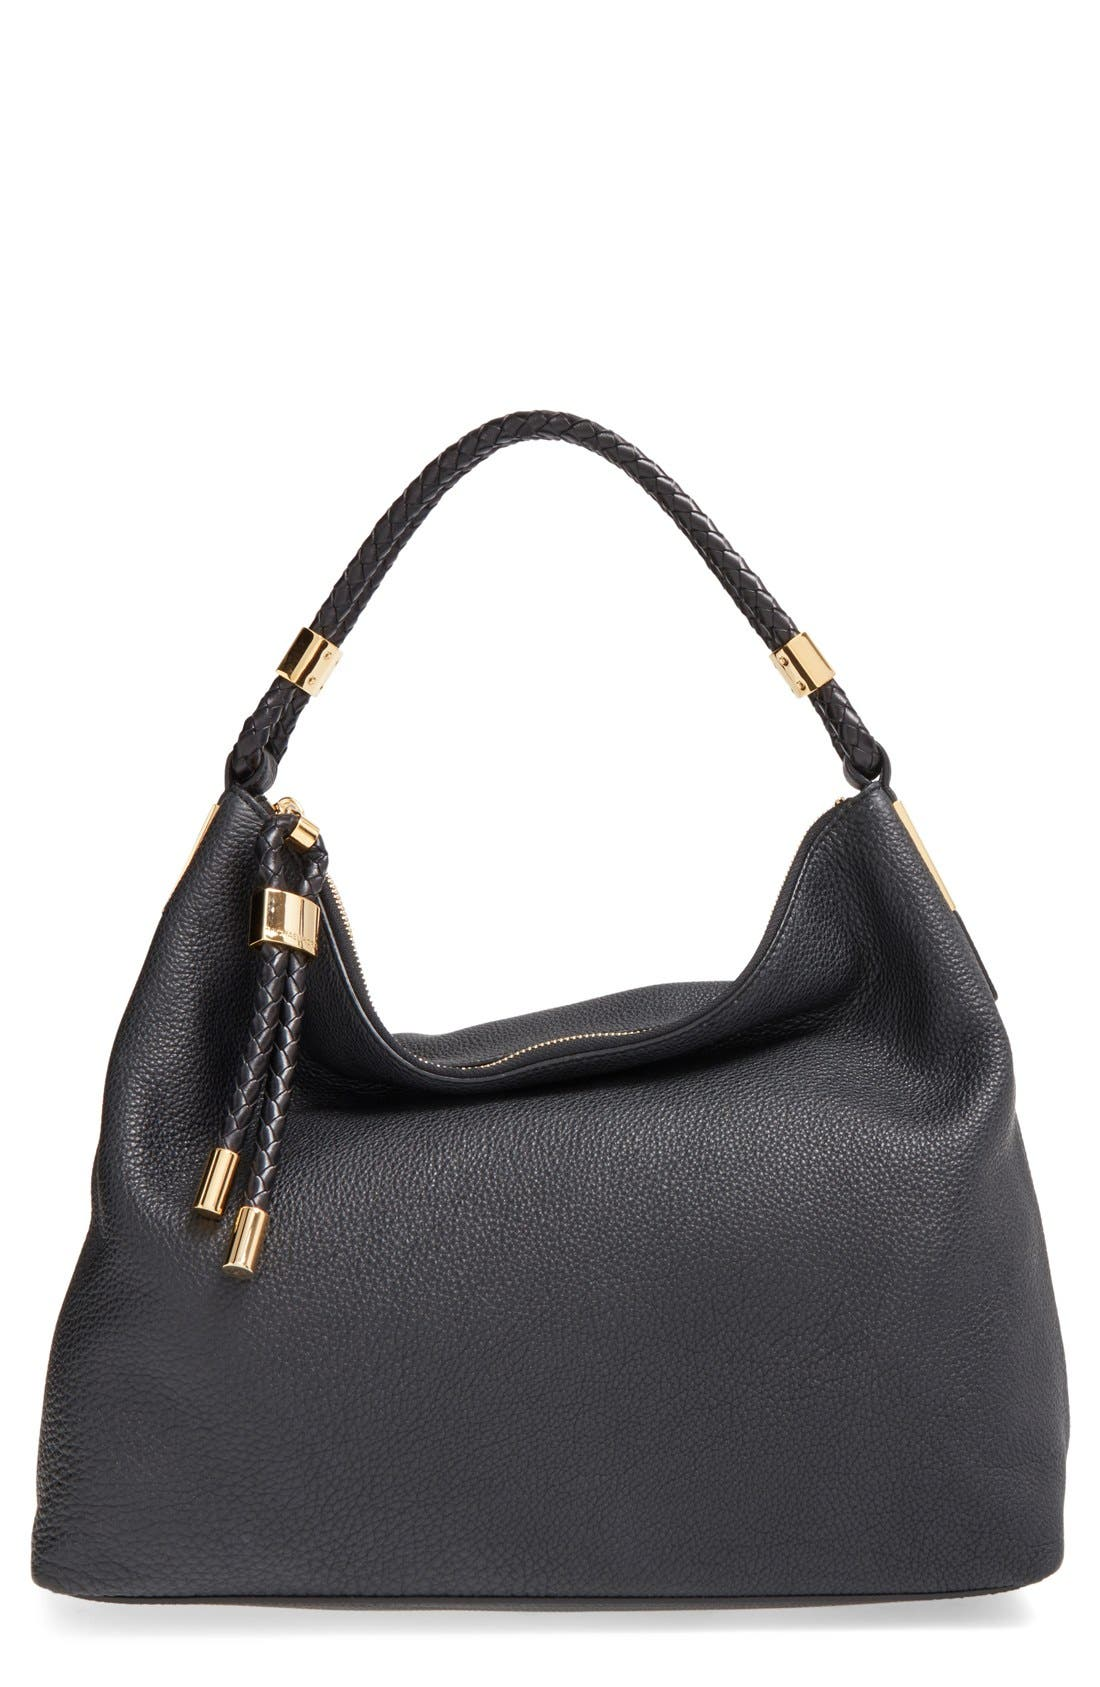 'Large Skorpios' Leather Hobo,                             Main thumbnail 1, color,                             Black